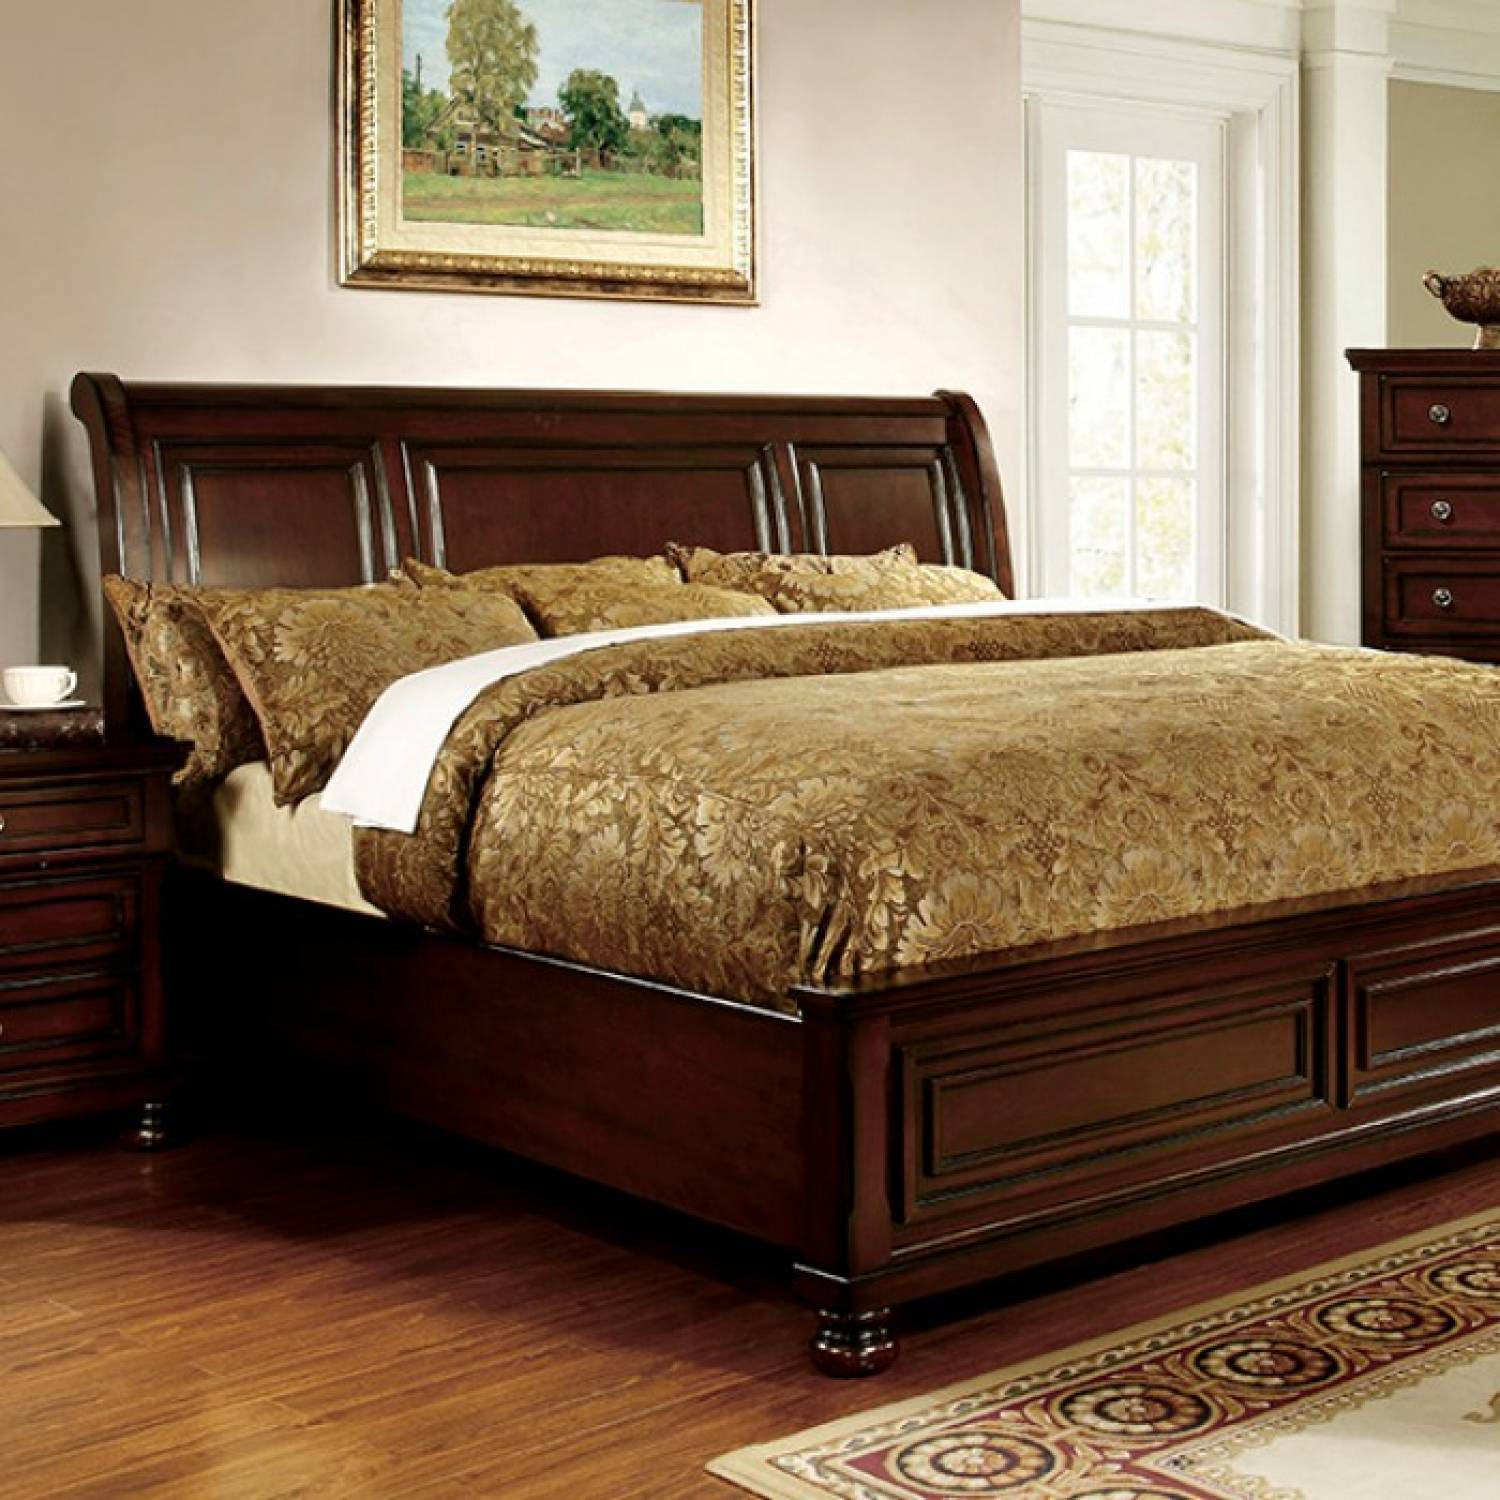 Northville CalKing Bed Dark Cherry Finish